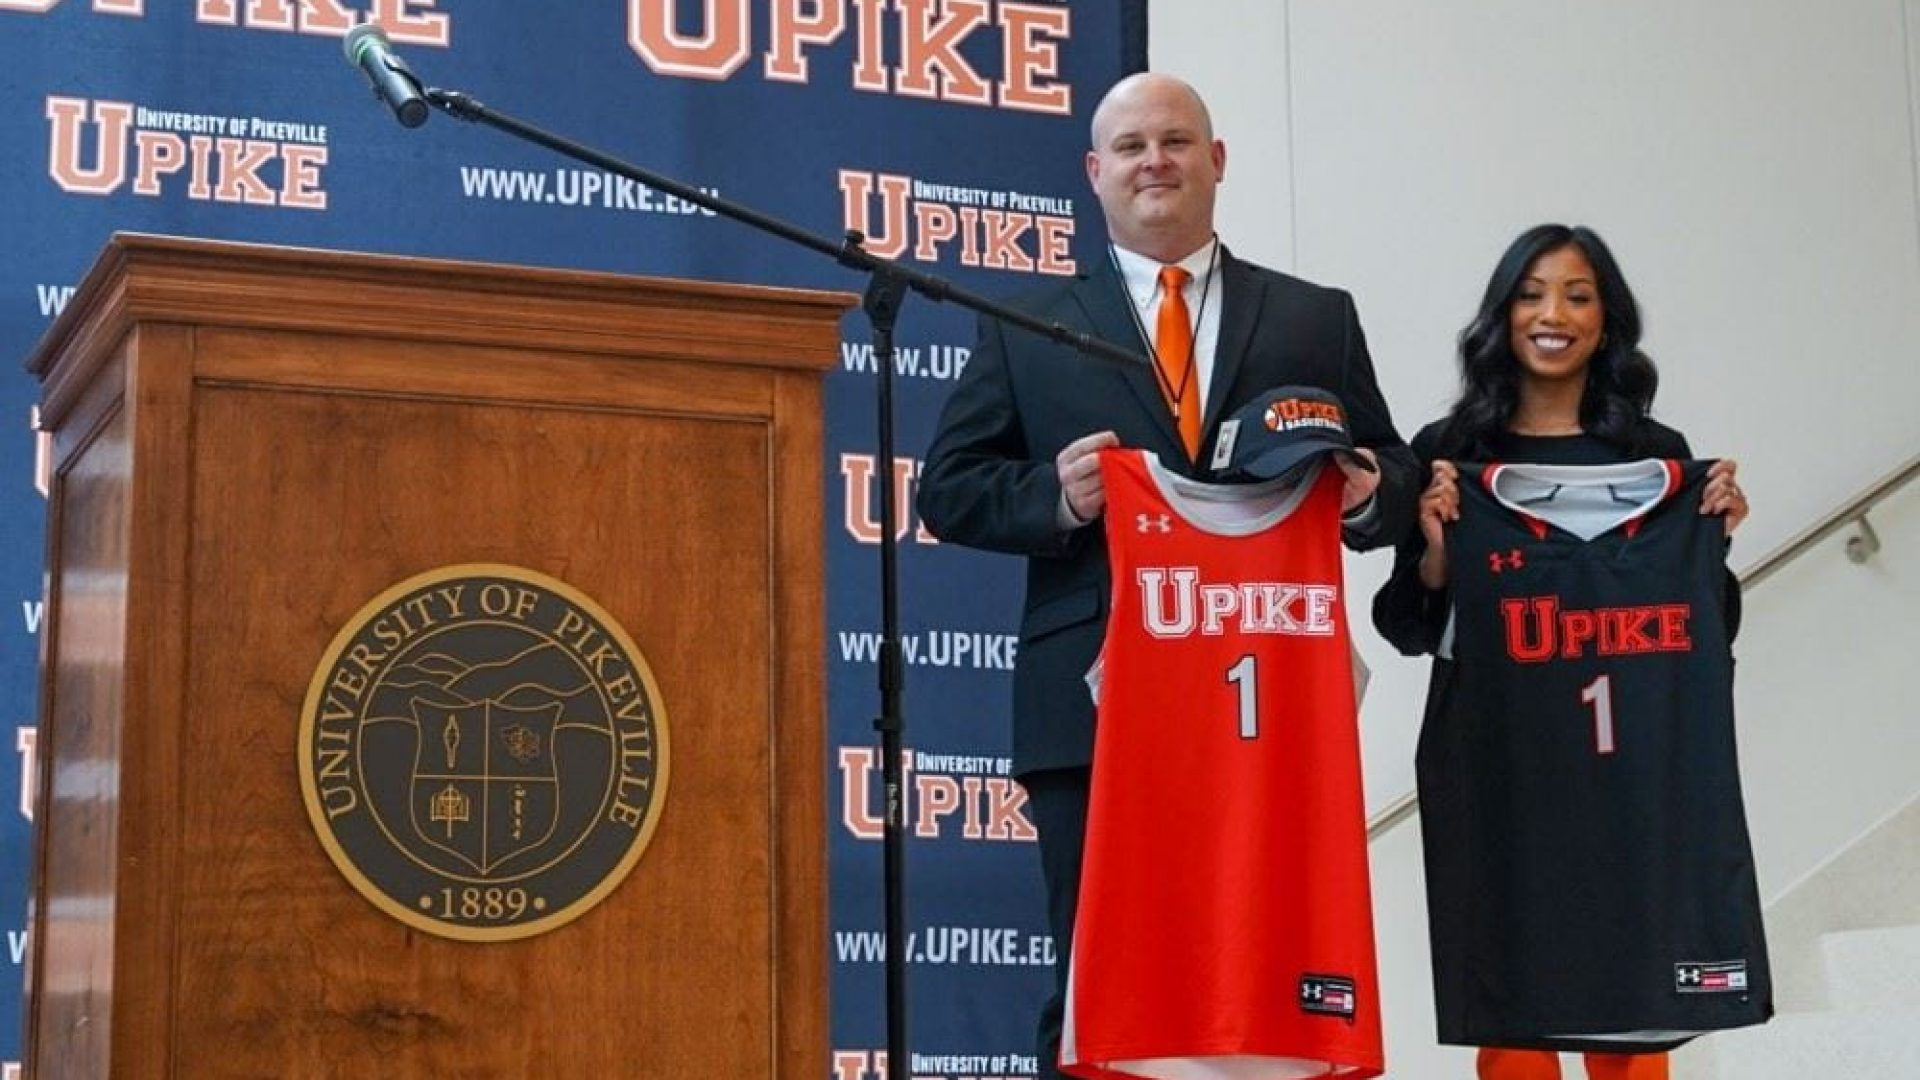 COLLEGE BASKETBALL: Compton officially welcomed as new UPIKE men's coach